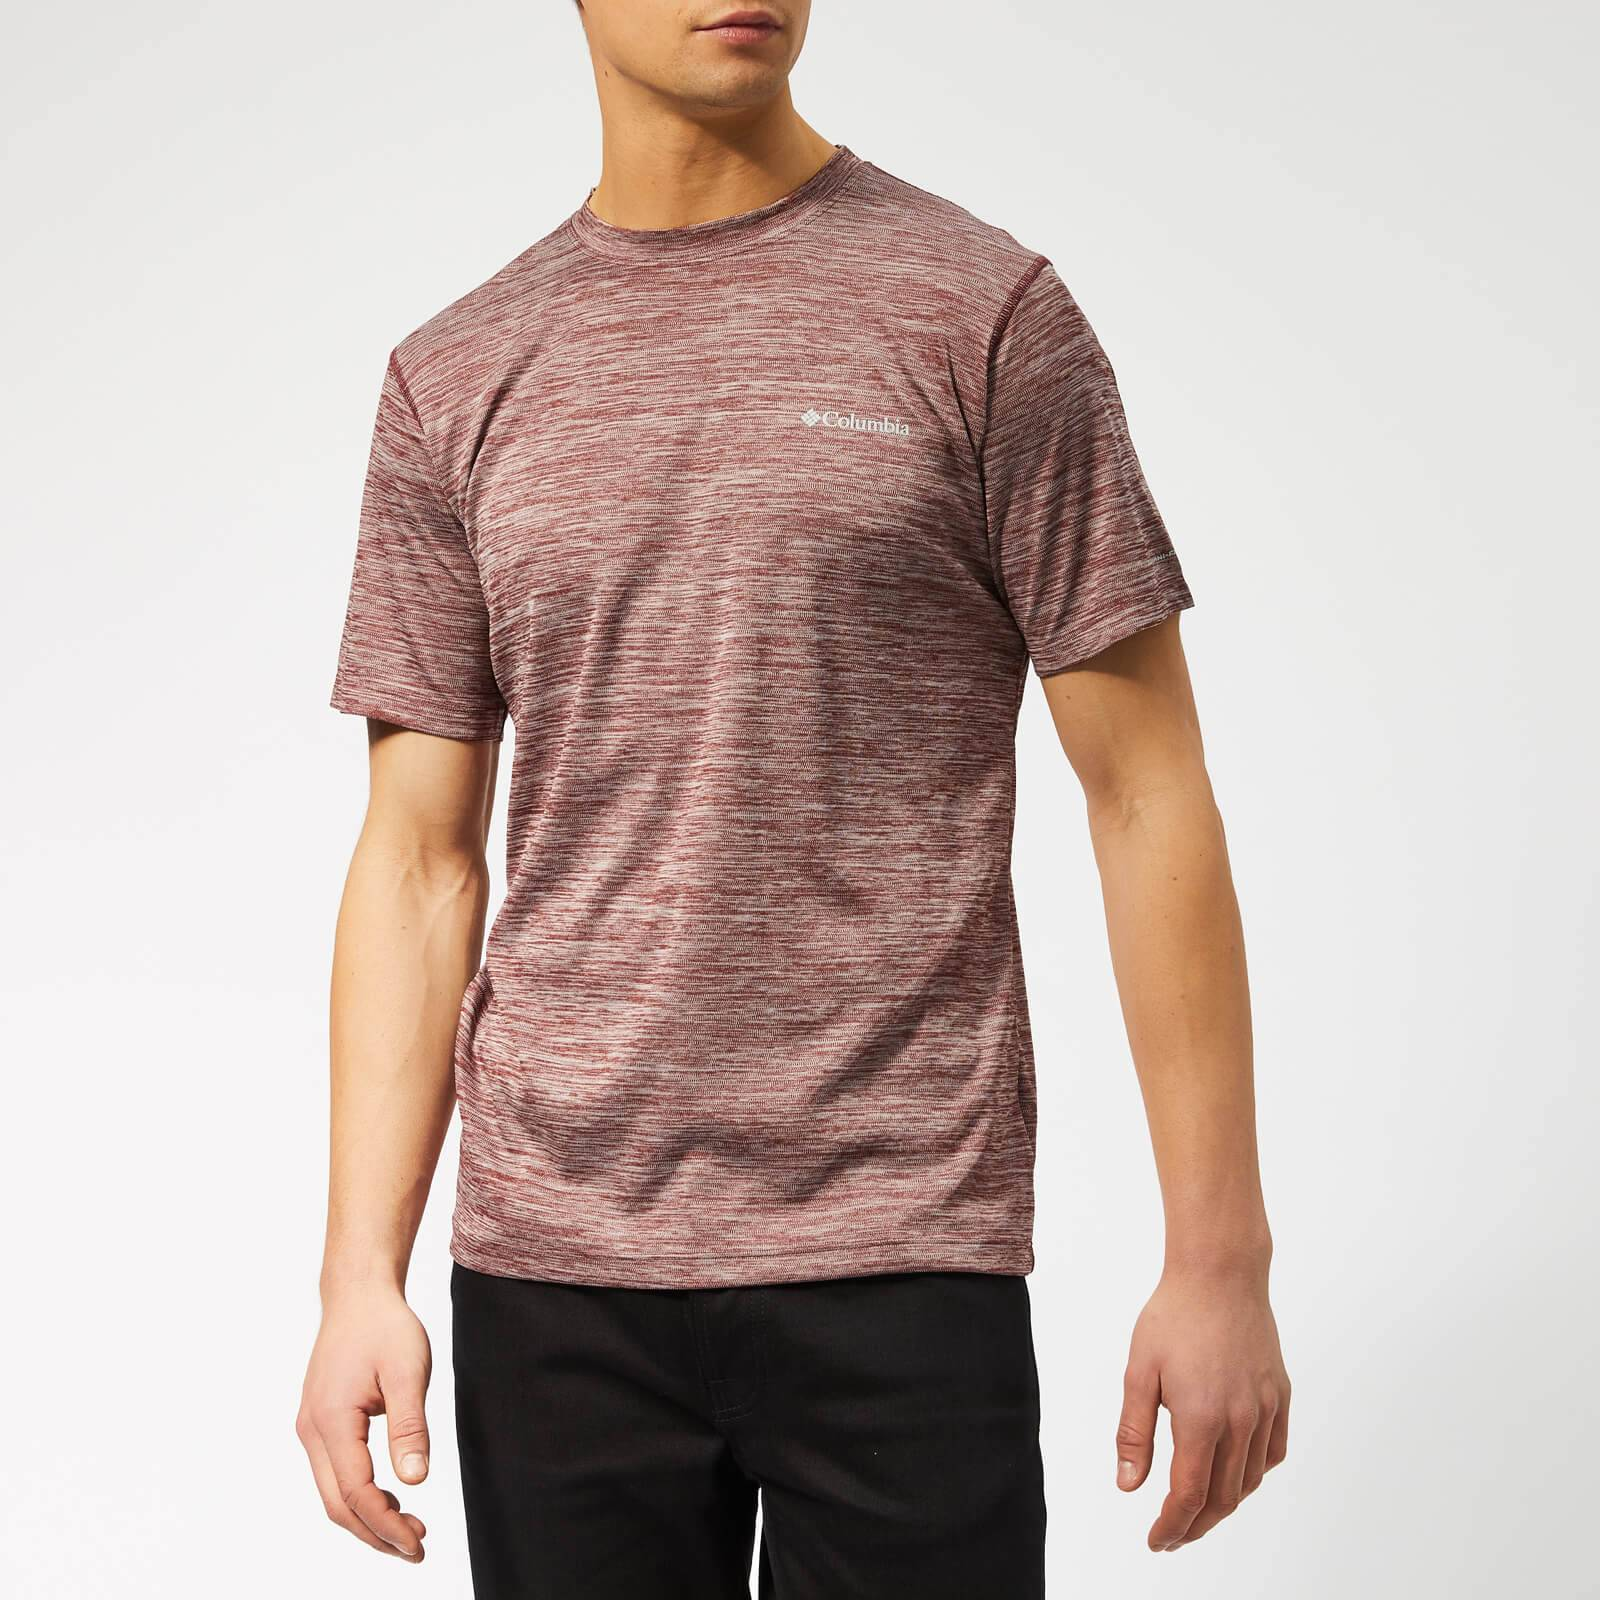 Columbia Men's Zero Rules Short Sleeve T-Shirt - Tapestry Heather - L - Red